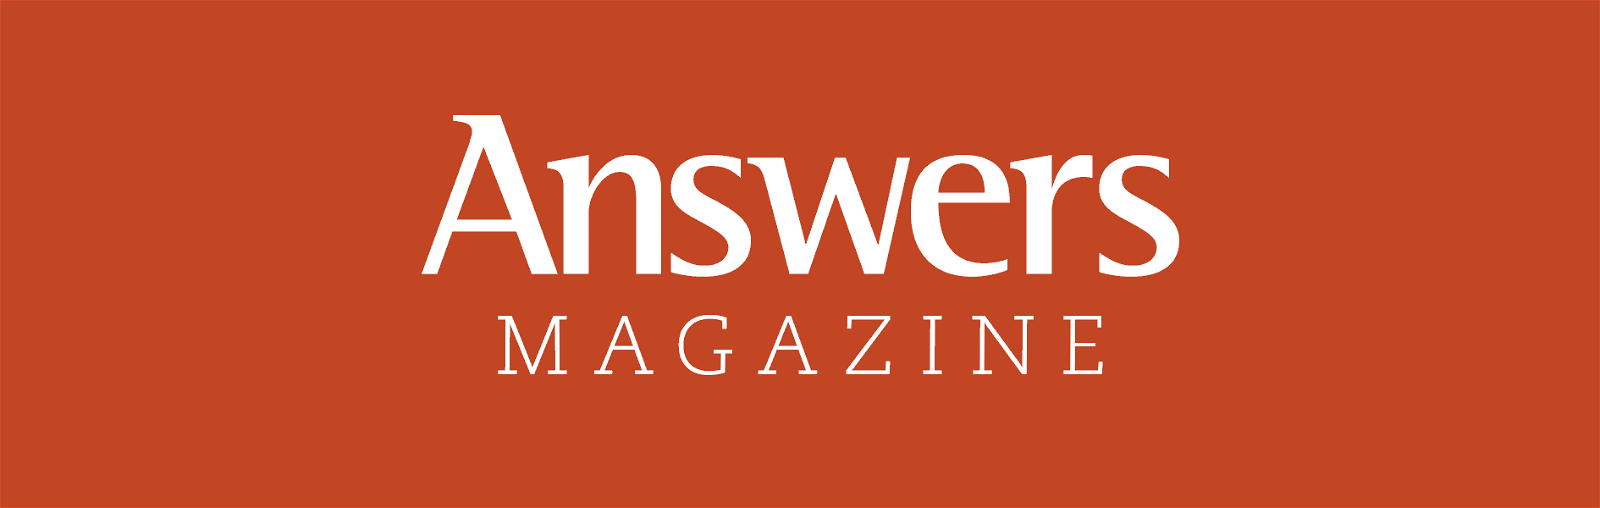 About Answers Magazine